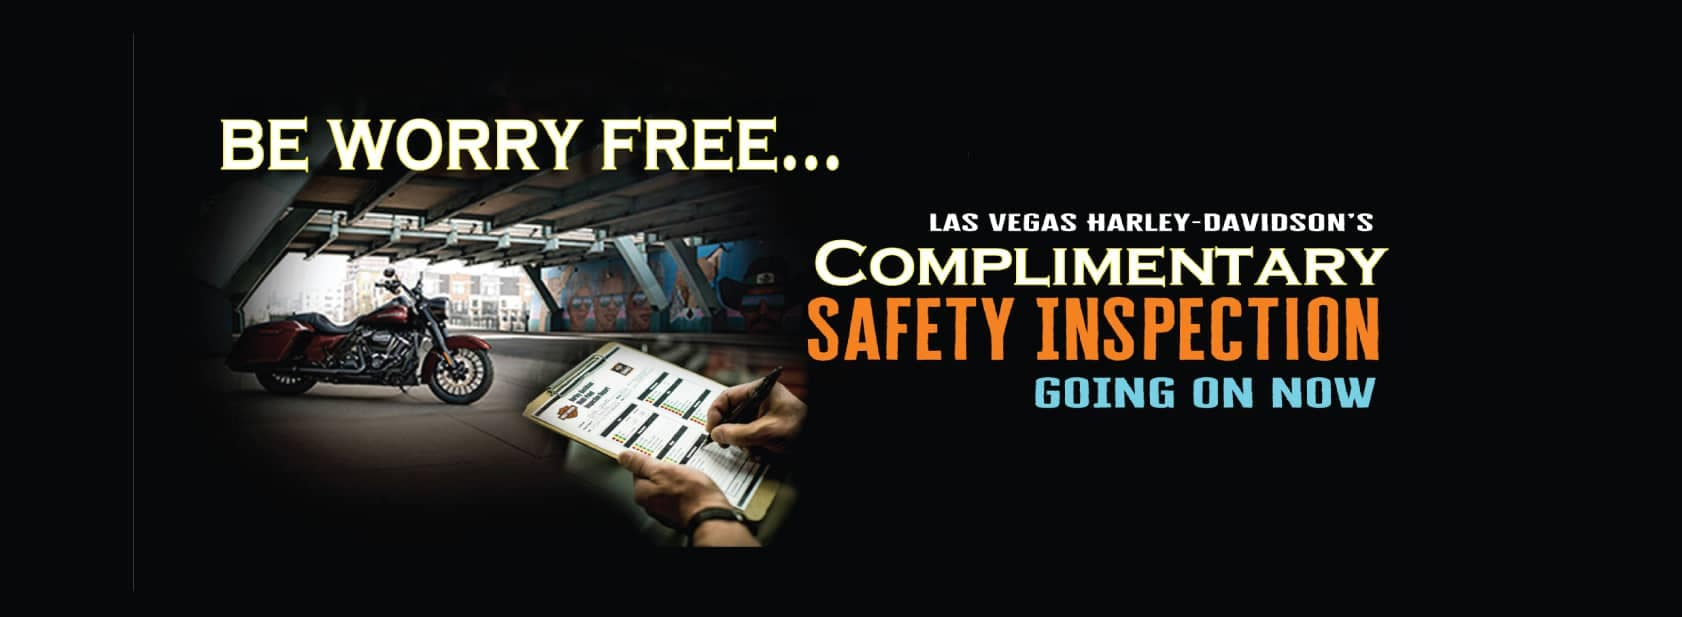 Las Vegas Harley-Davidson Treats Customers Like Family With a Free Harley Service Inspection